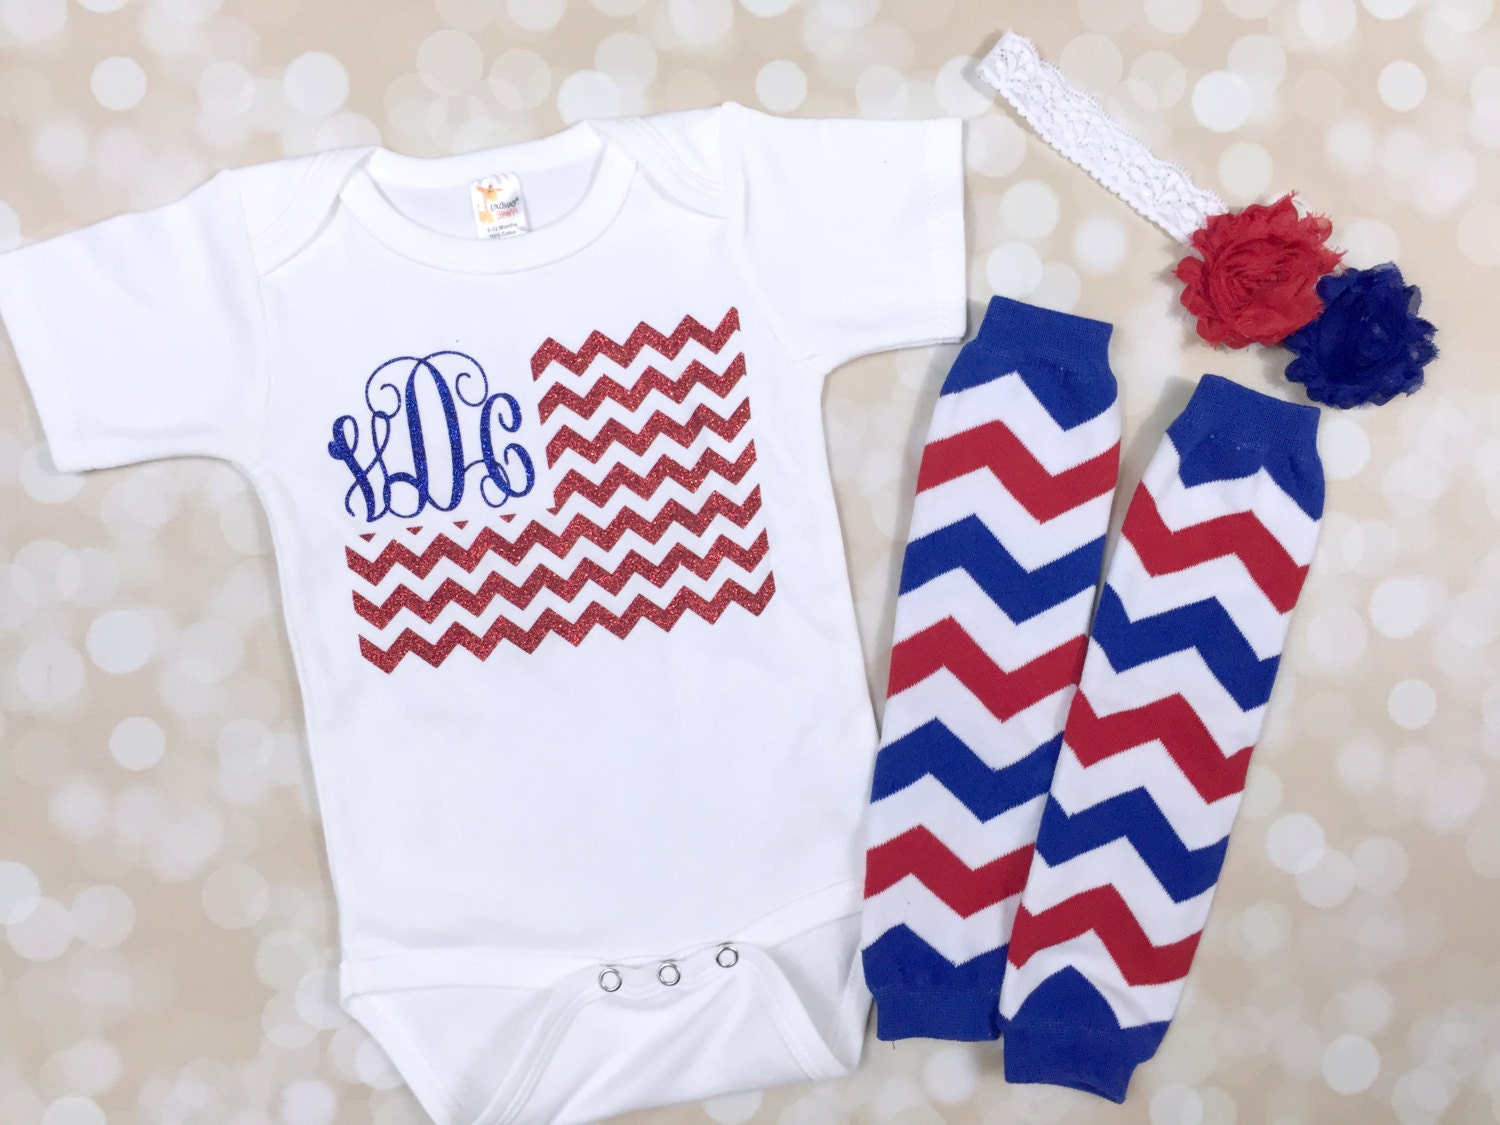 Find an affordable kids Fourth of July outfit, Fourth of July dress, shirt or accessory that will show your little boy's or girl's spirit! All of our our Fourth of July outfits, dress and accessories are discount priced to save you money.